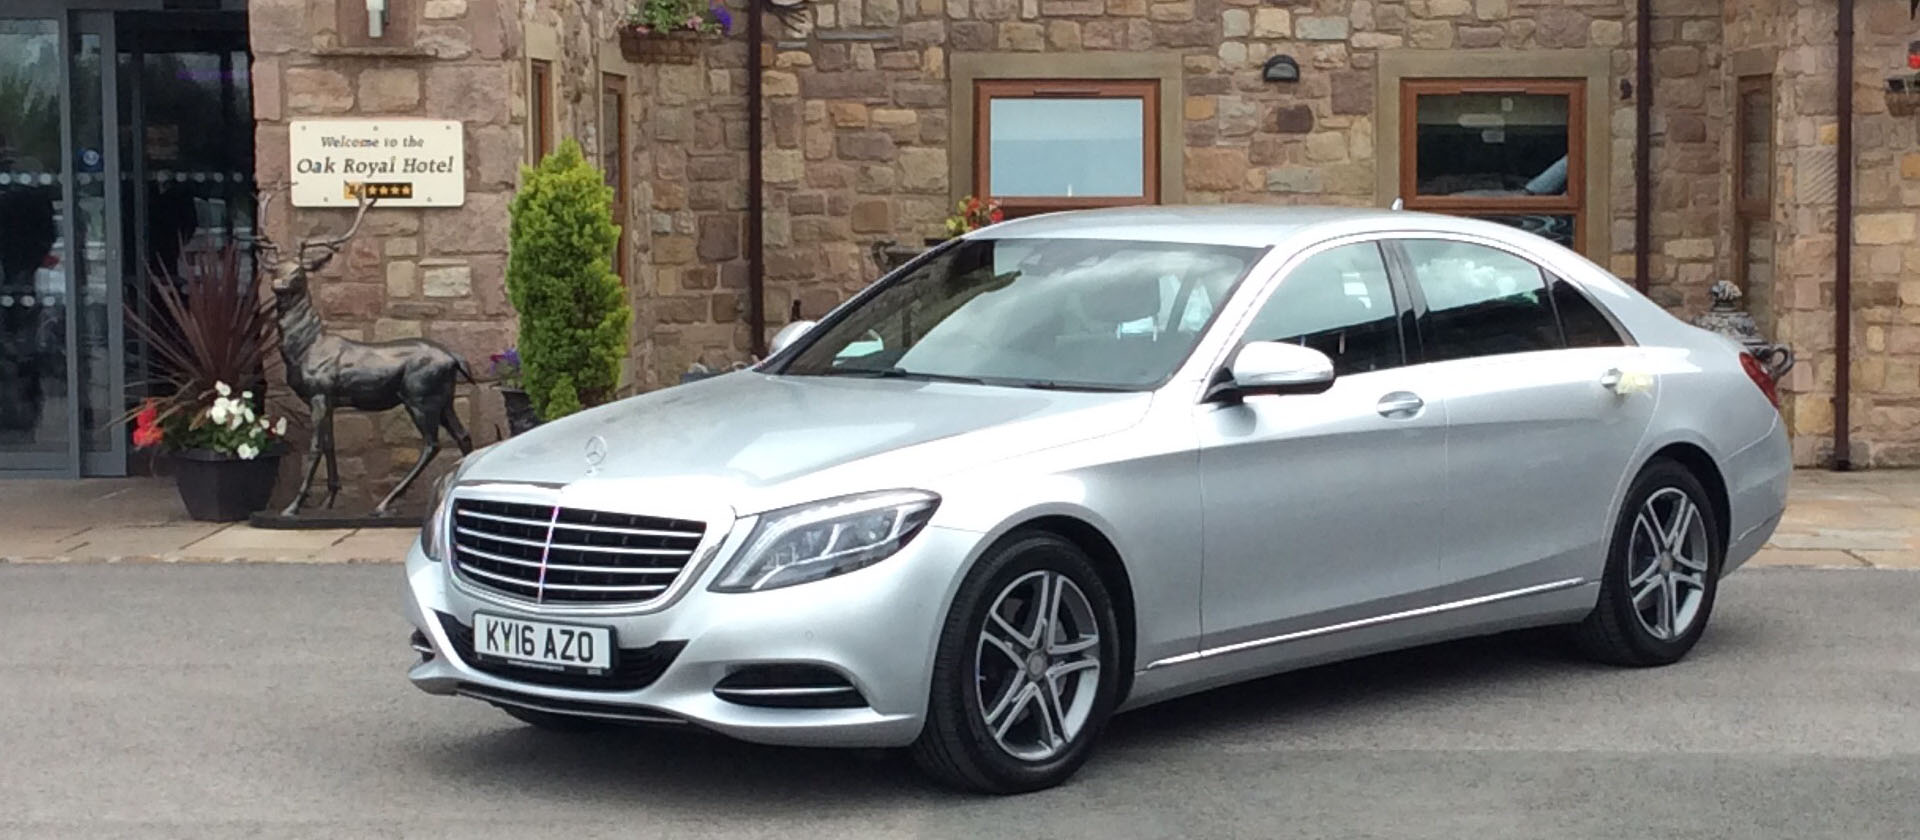 Wedding Car Hire Prices Manchester